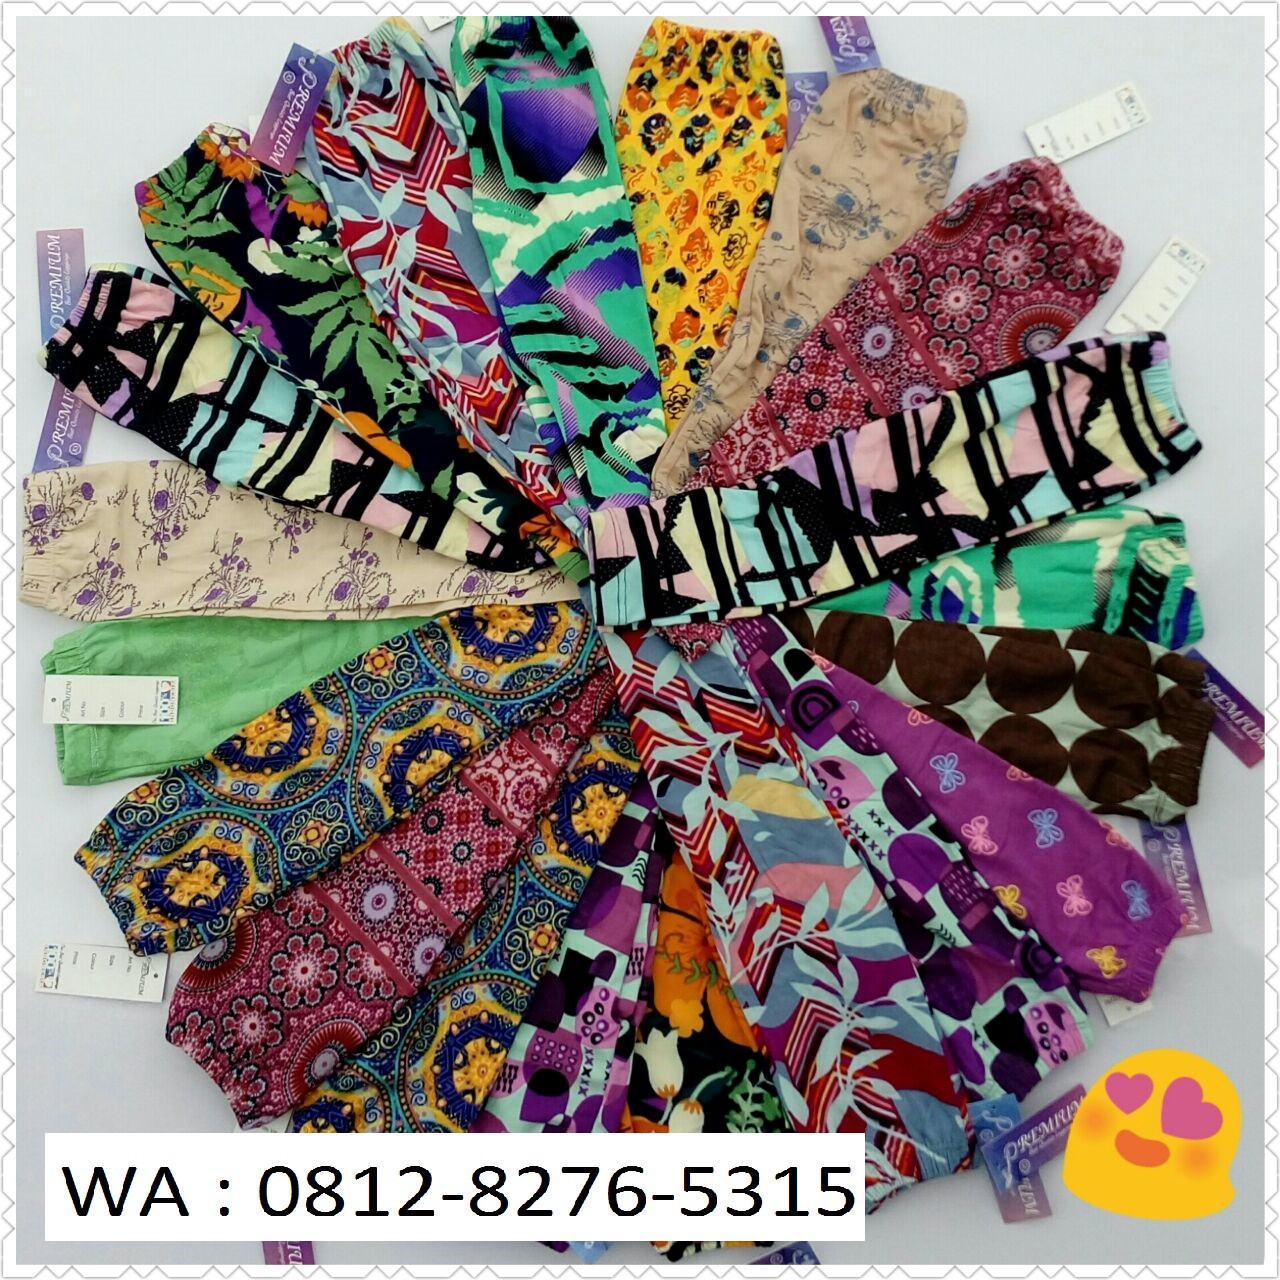 Freeongkir Wa 0812 8276 5315 Jual Legging Bayi Newborn By Usaha Legging Medium